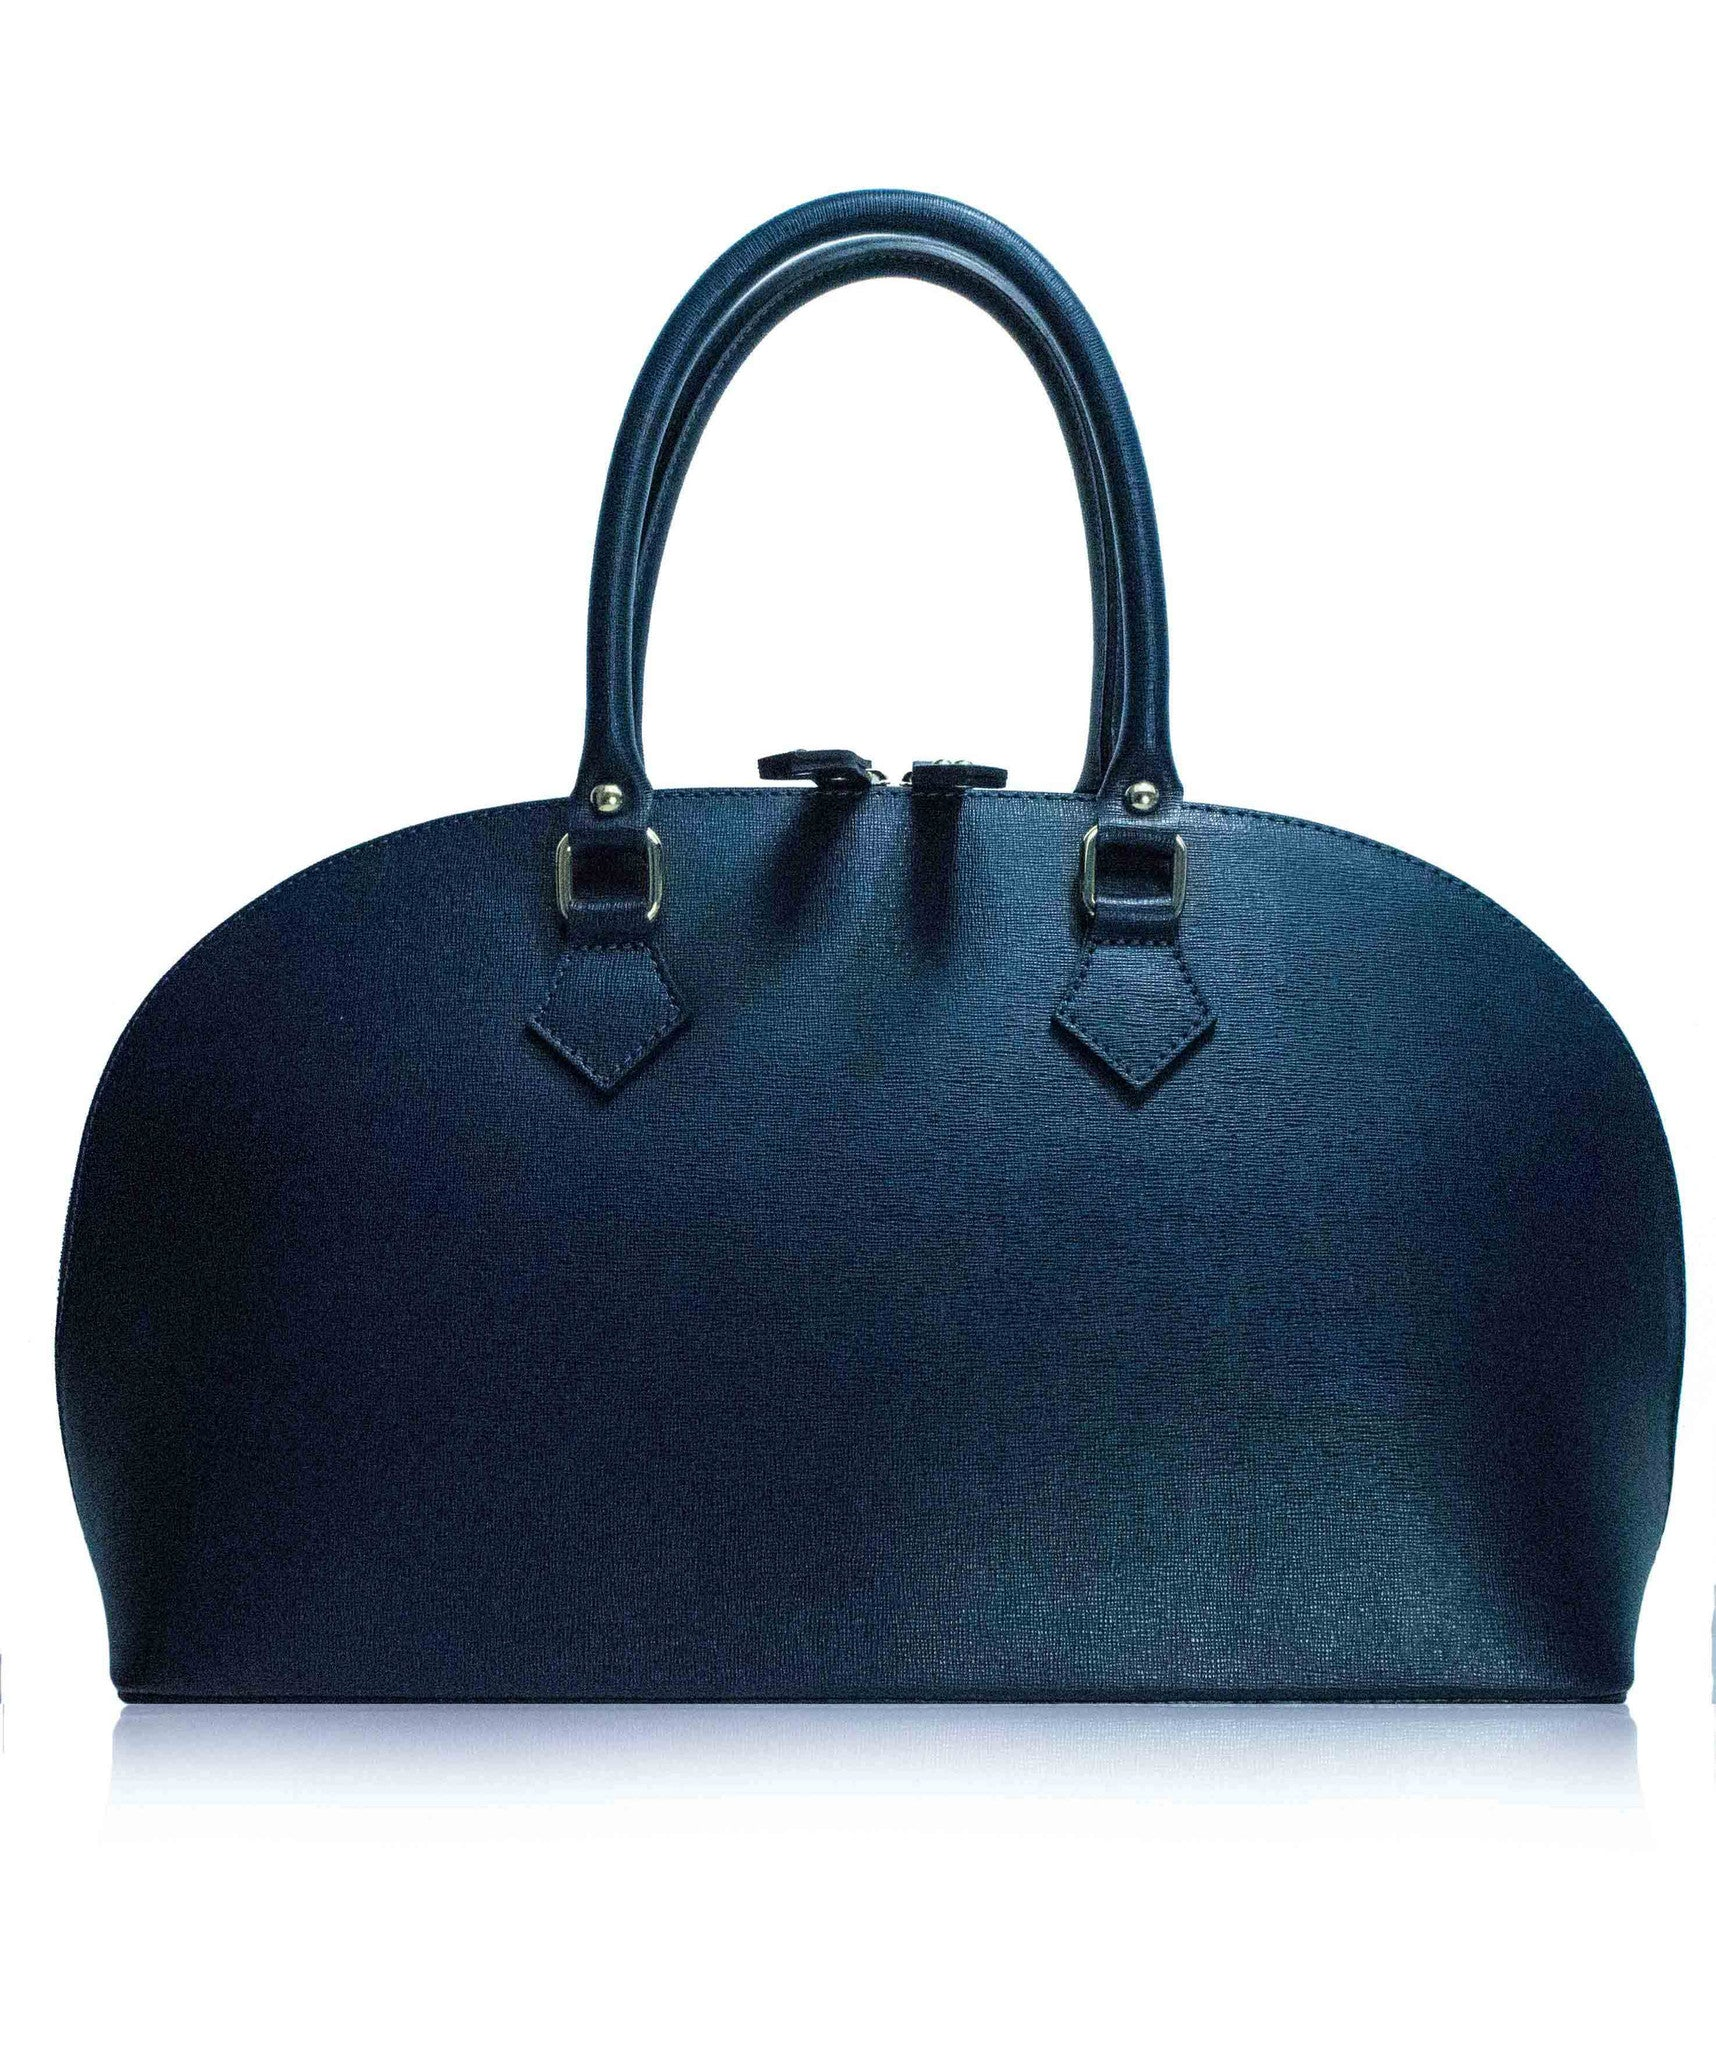 425275255a83 LAJATICO Dark Blue Italian Leather Tote Bag | Florence Leather Collection